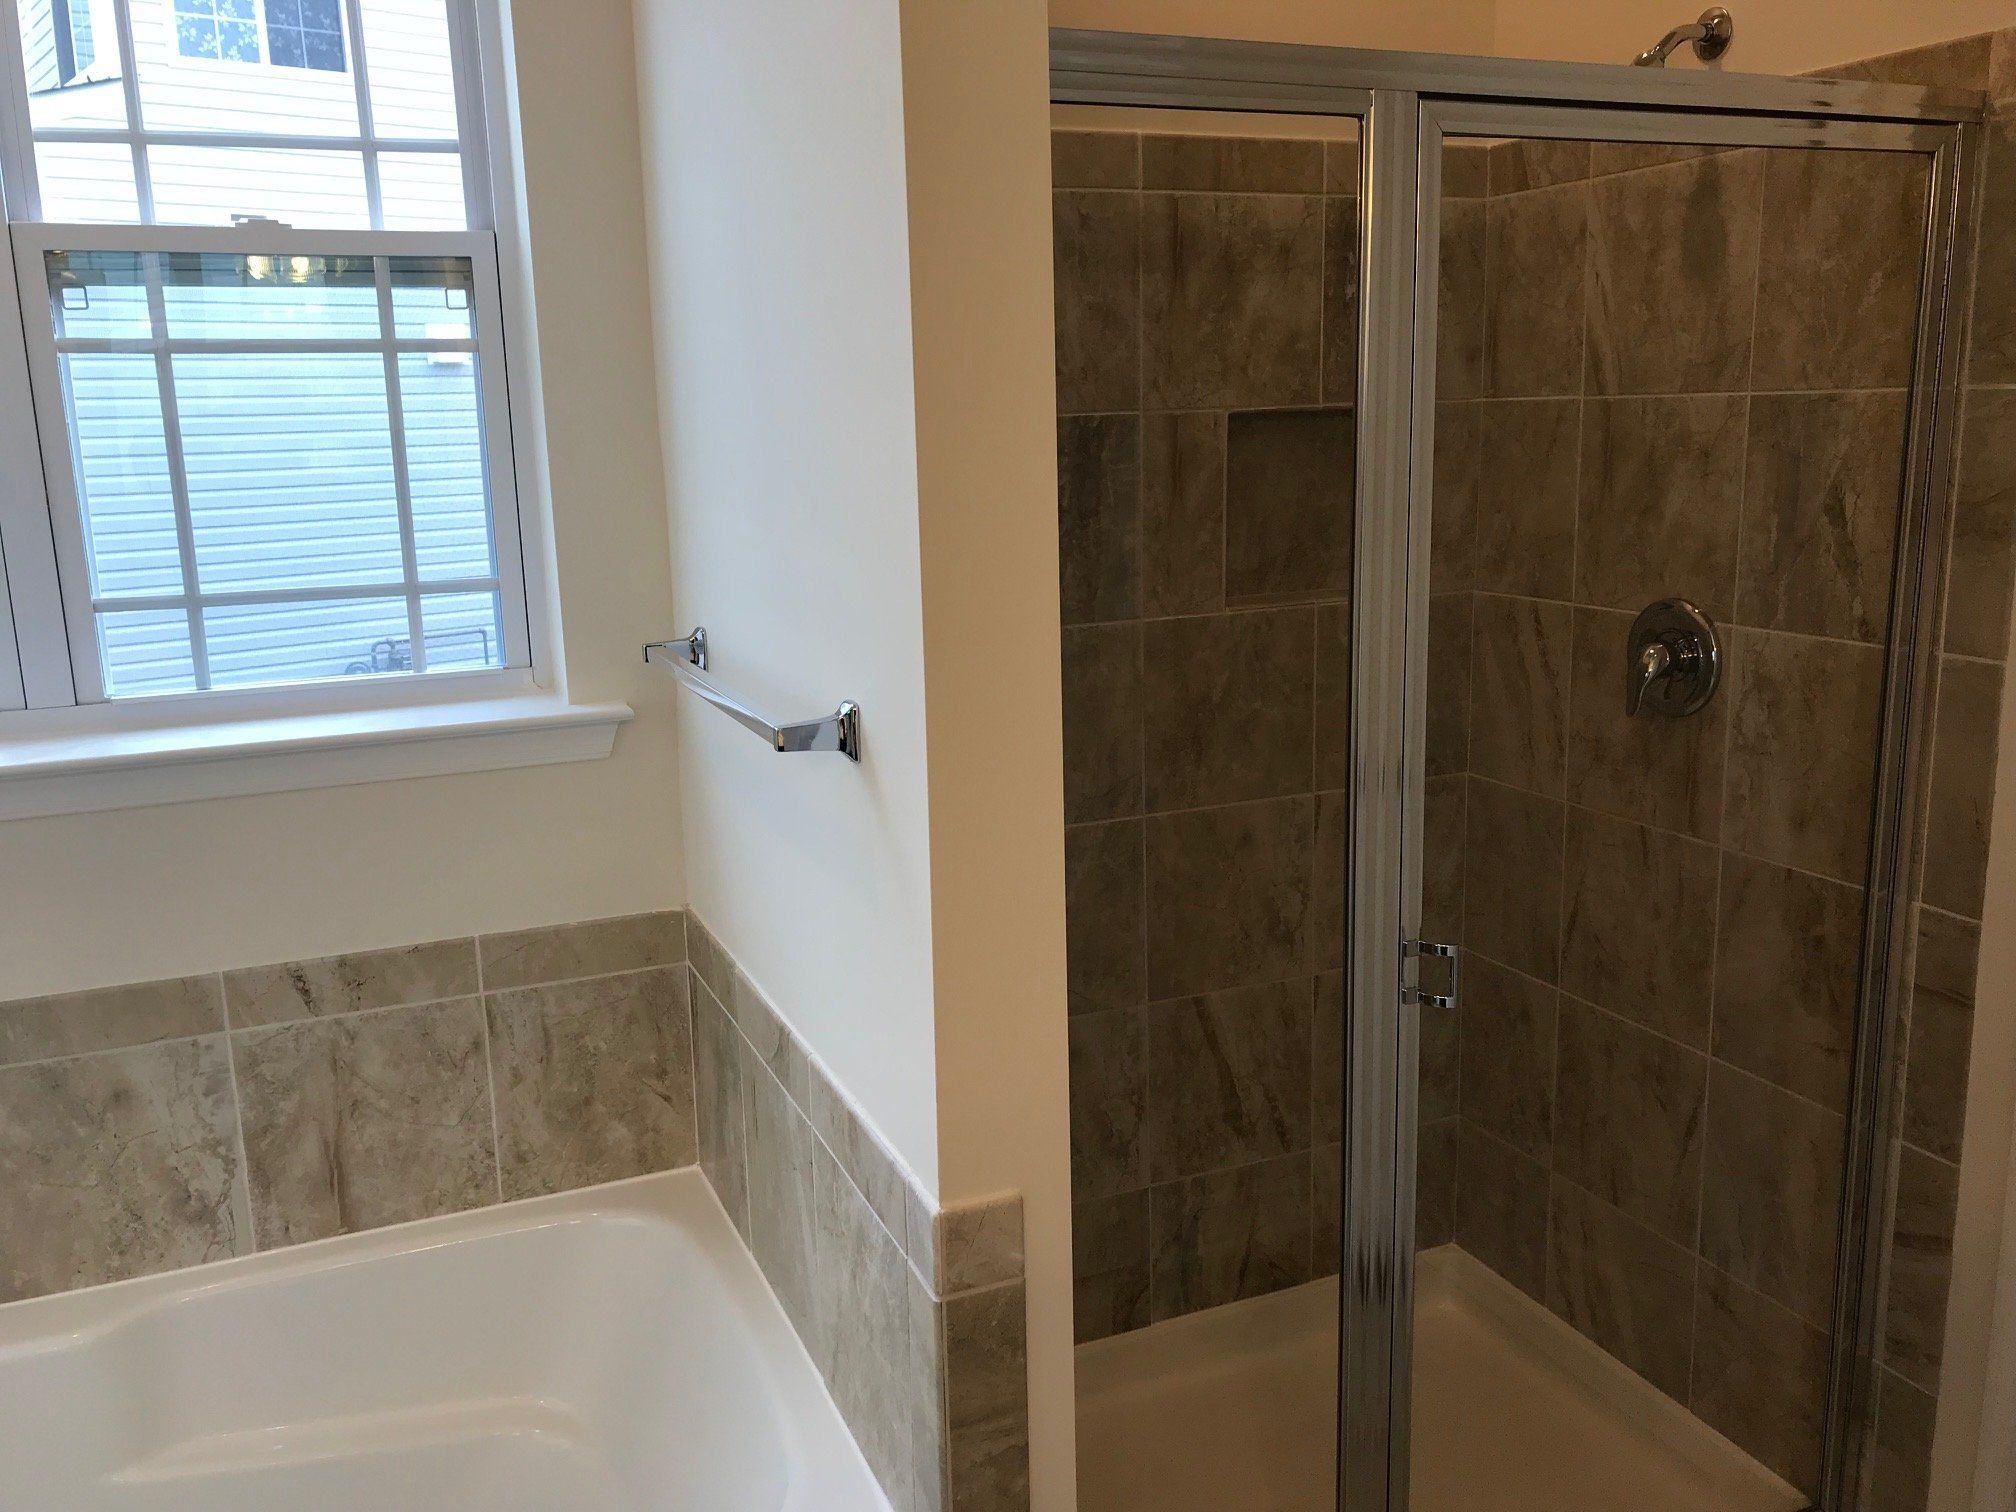 Bathroom featured in the Warwick By Timberlake Homes in Dover, DE